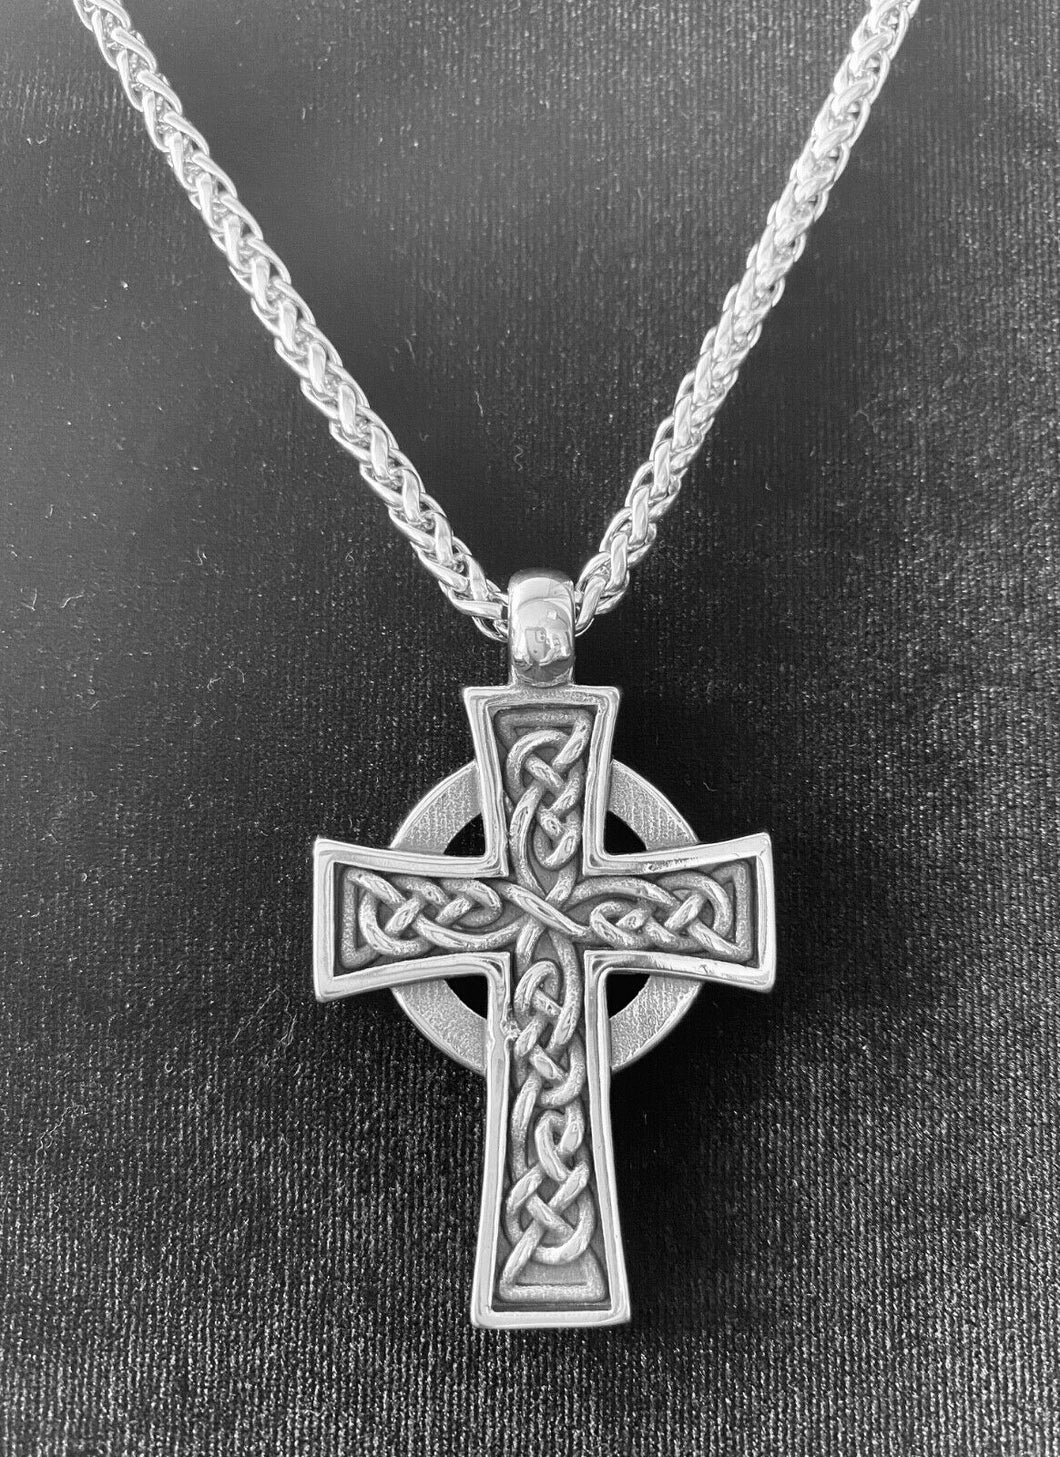 Large 316L Stainless Steel Irish Celtic Men's Cross Pendant FREE Chain